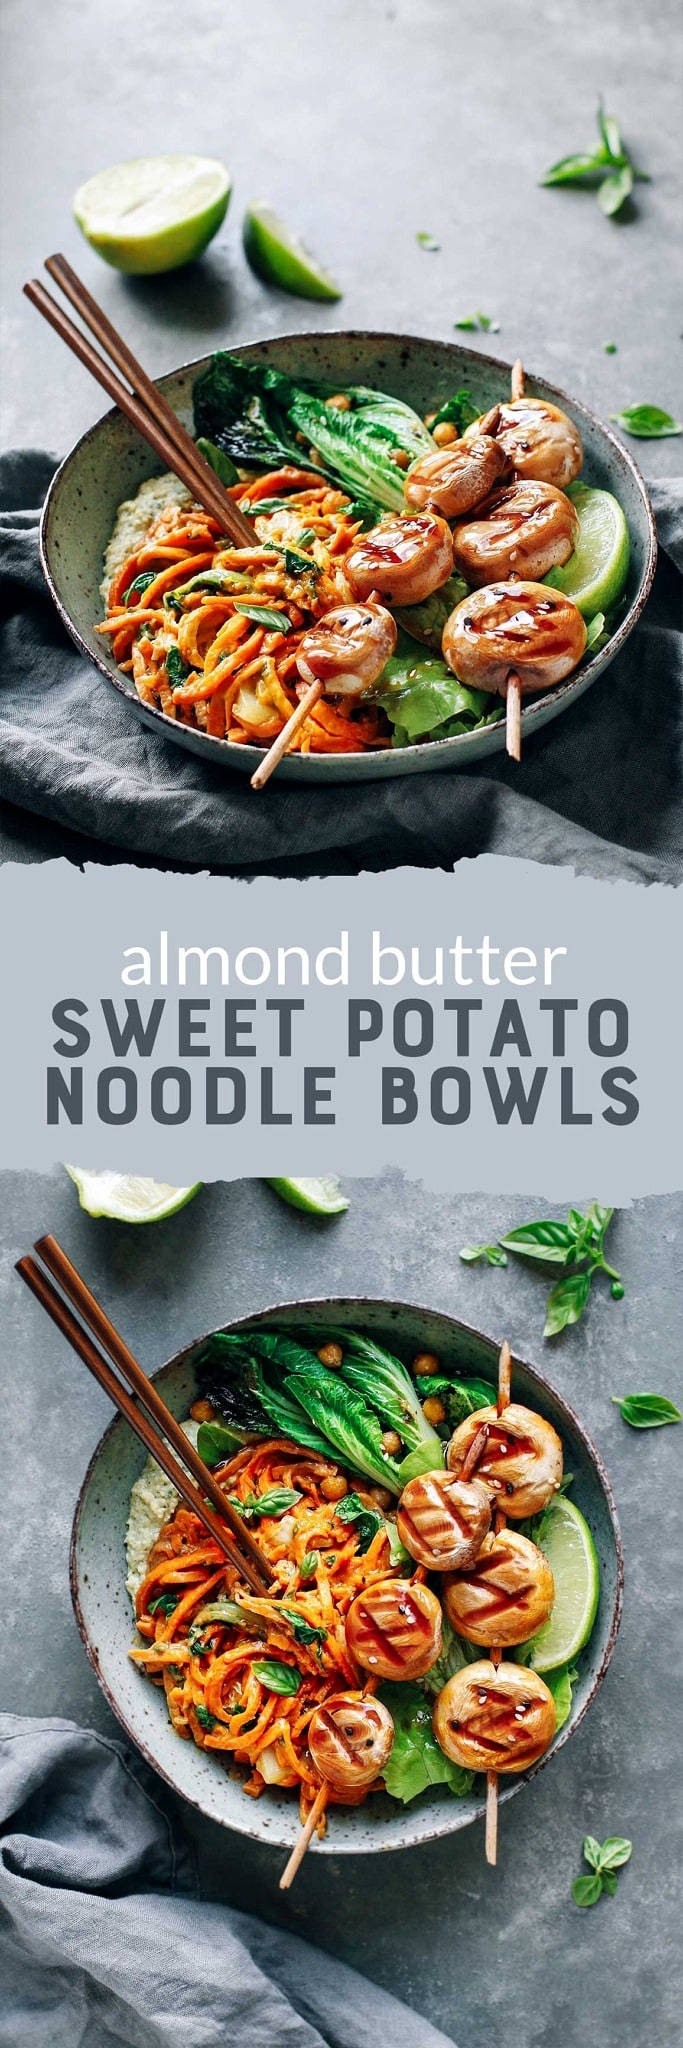 Almond Butter Sweet Potato Bowls